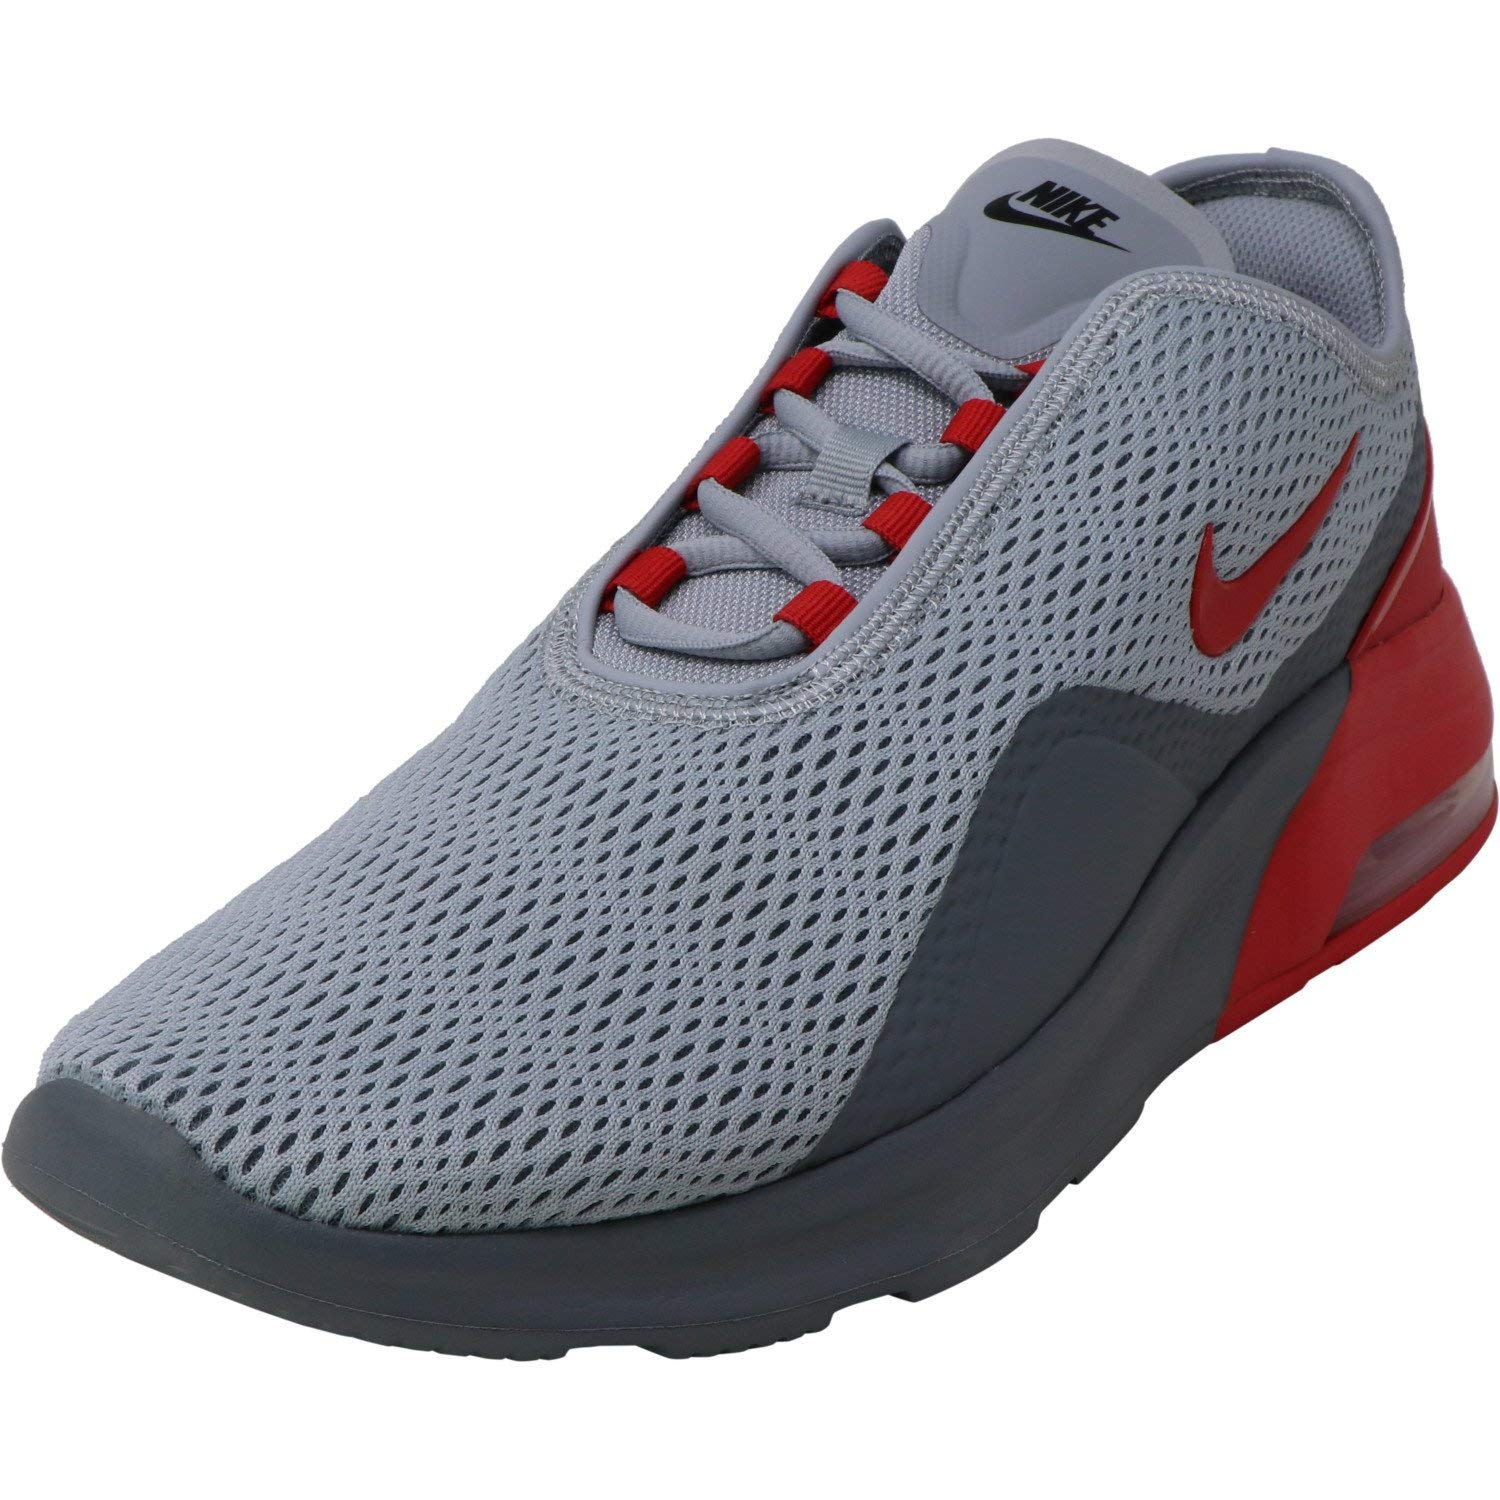 Nike Mens Motion Running Shoes